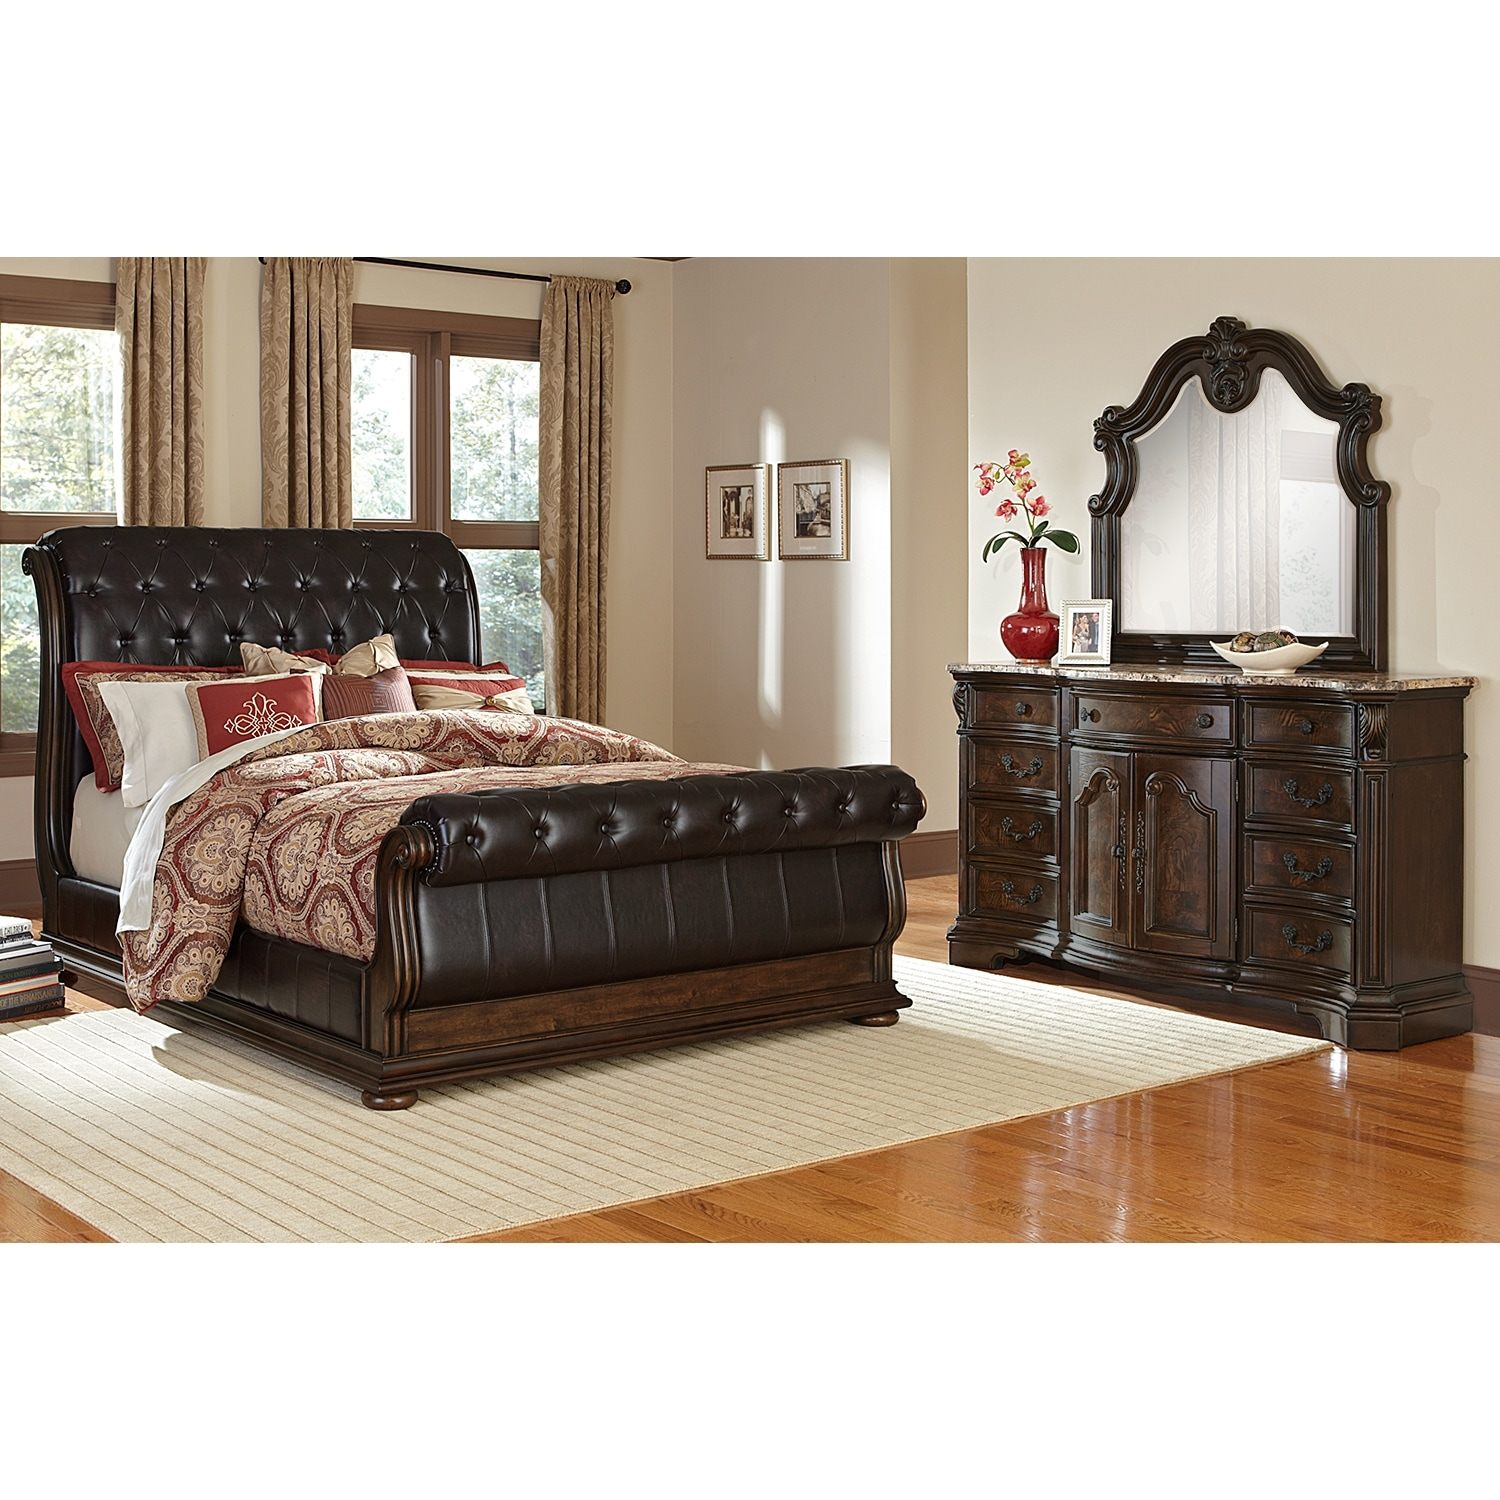 Monticello pecan ii 5 pc king bedroom value city furniture for King bedroom furniture